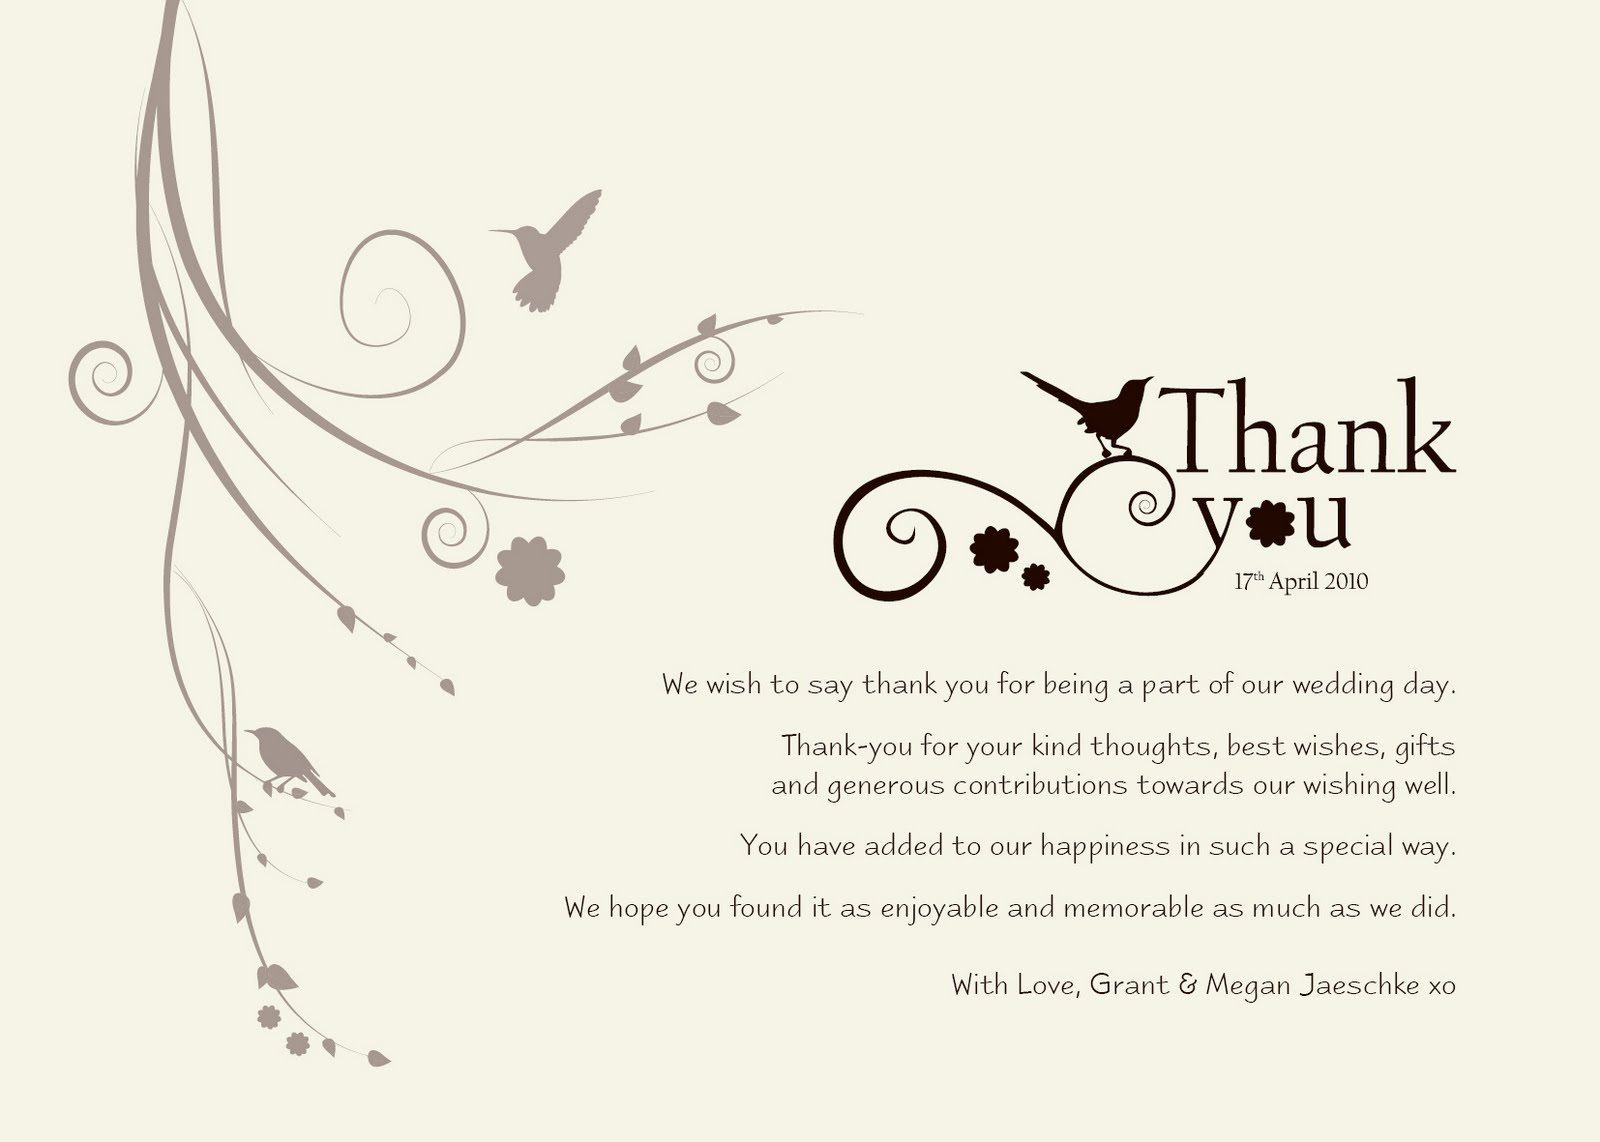 Wedding thank you templates goseqh wedding thank you templates friedricerecipe Choice Image